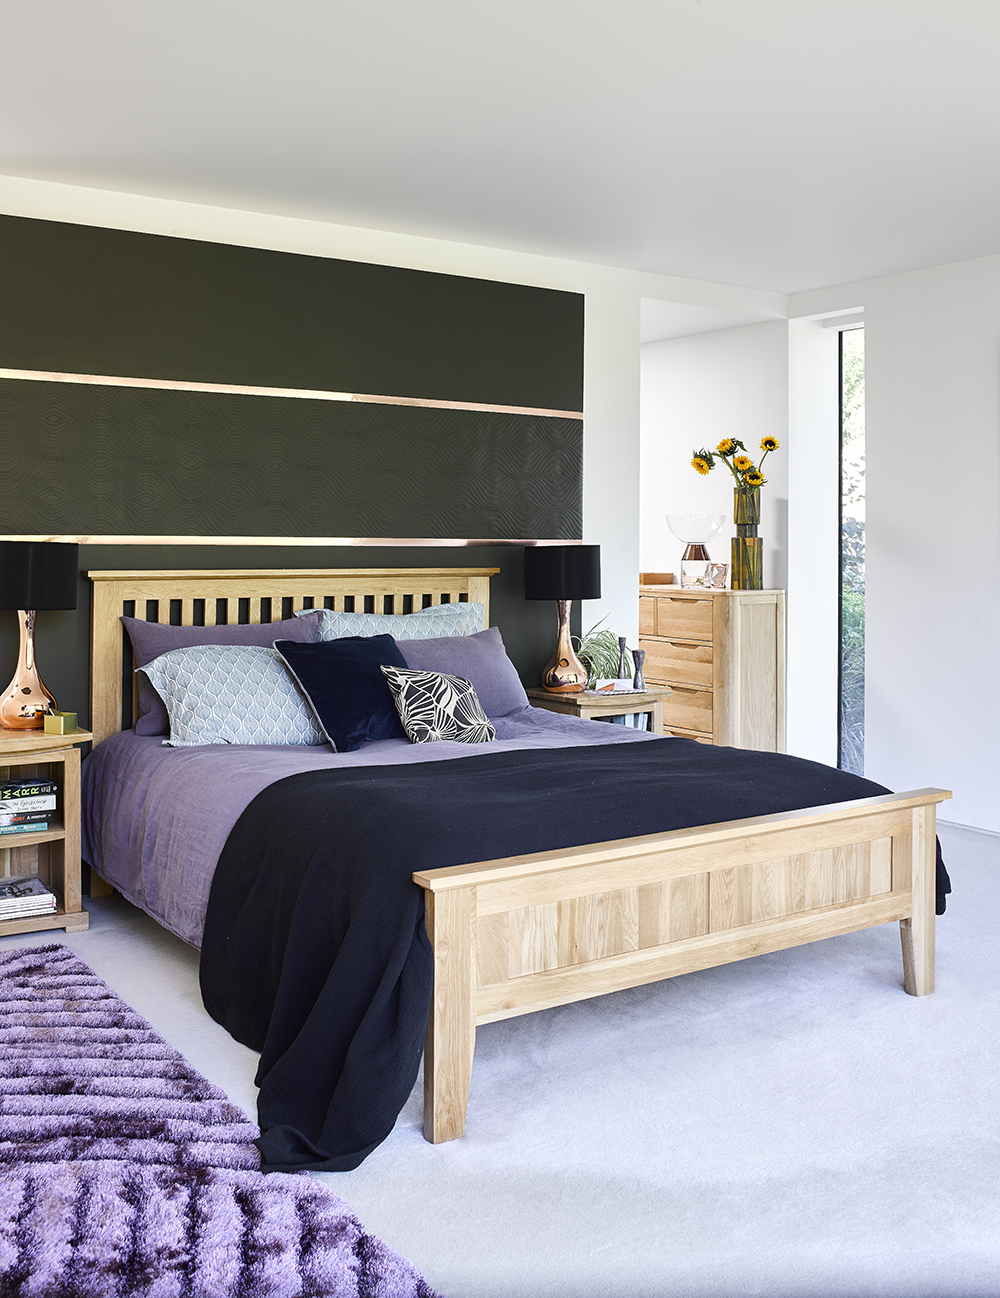 Bedroom with purple bedding and black walls